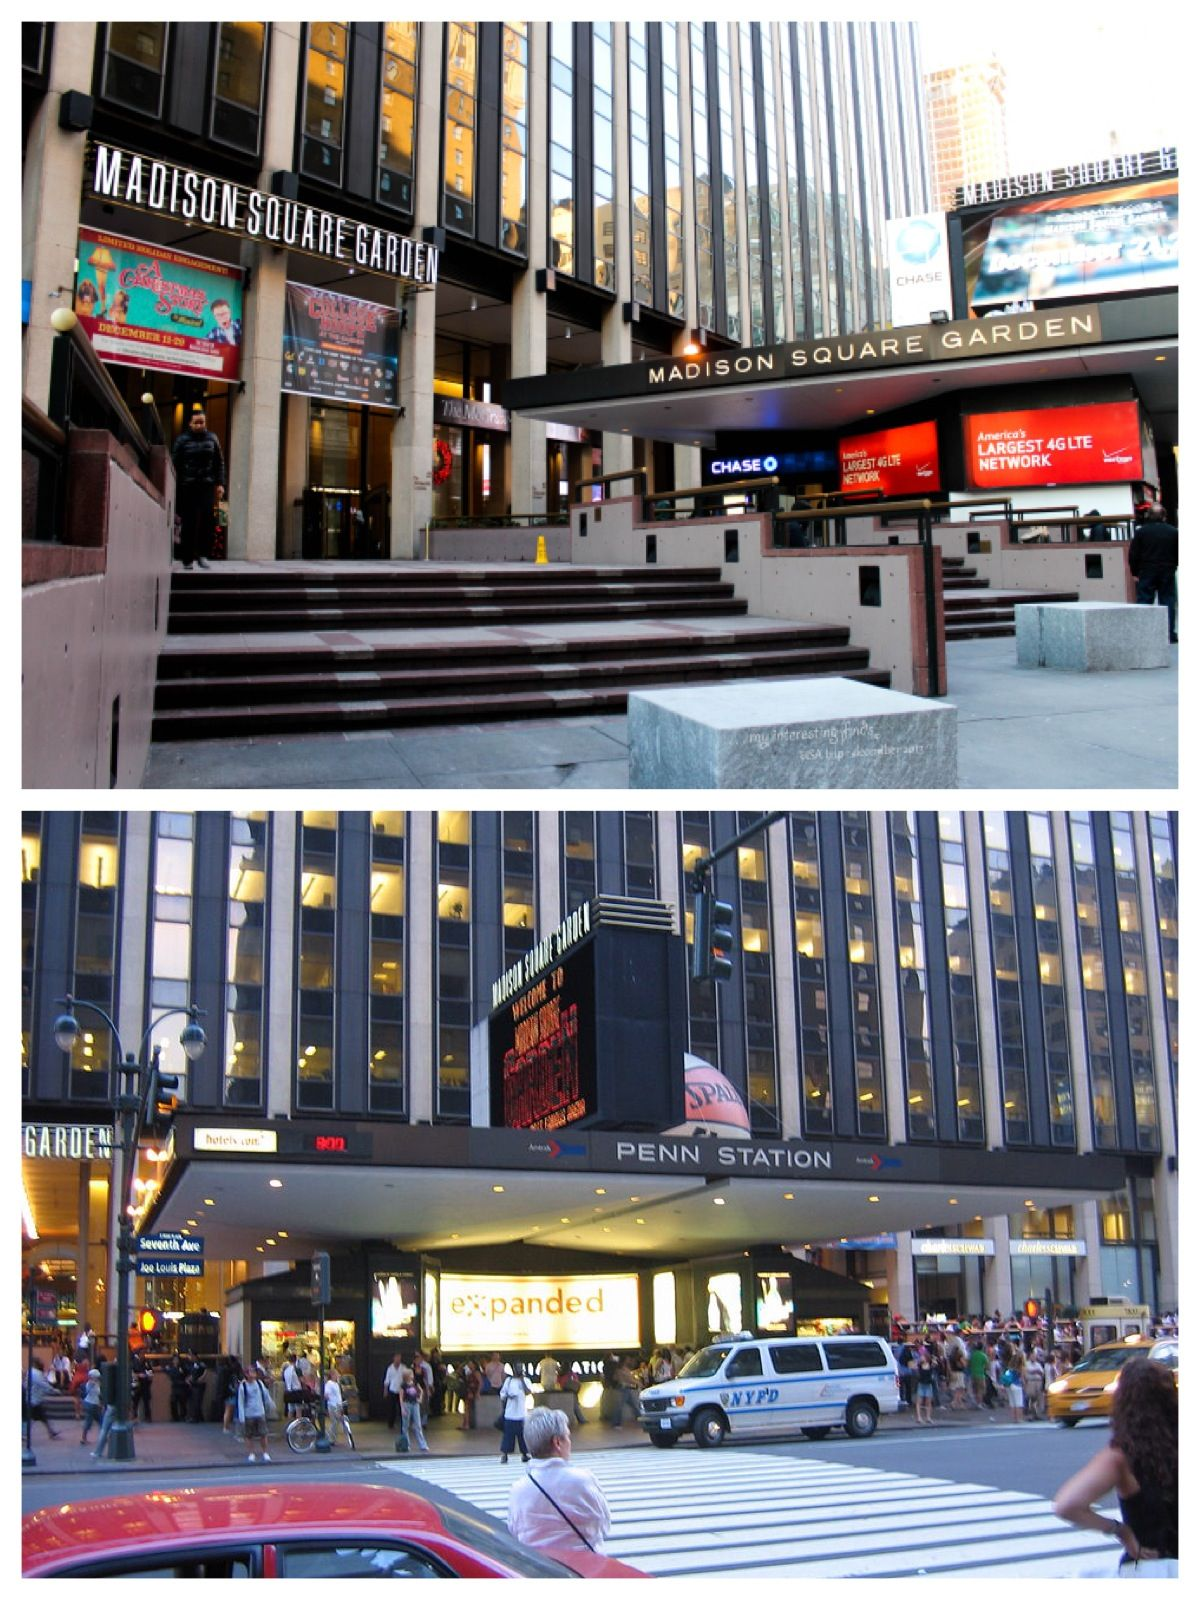 The Seventh Avenue entrance to Madison Square Garden and